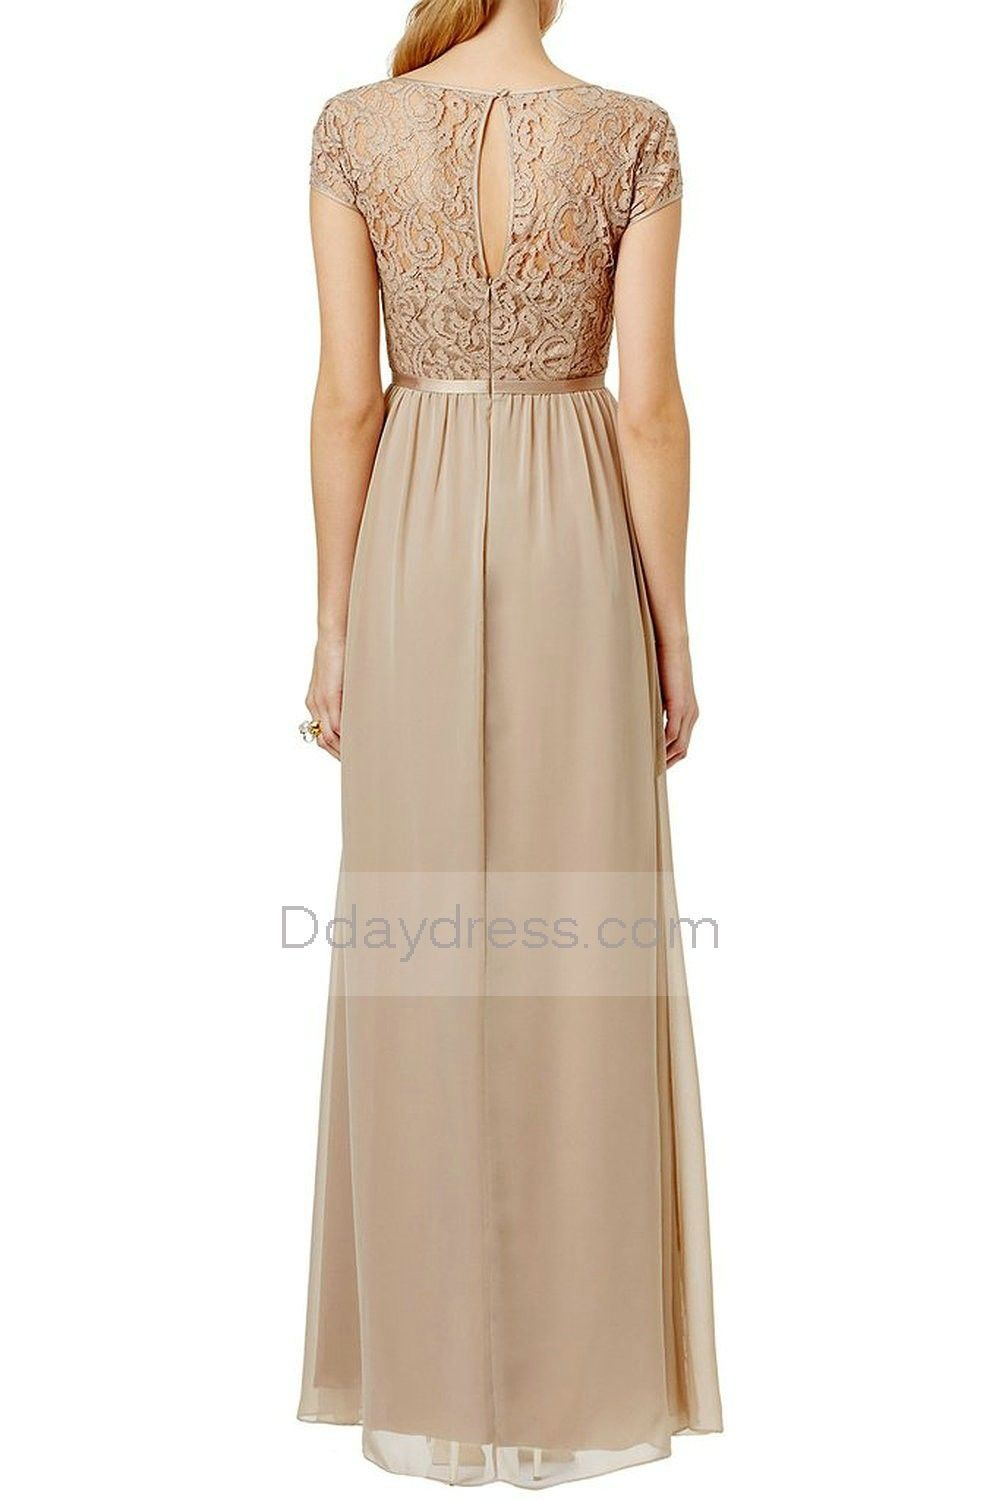 Vintage short sleeve lace top chiffon long bridesmaid evening dress